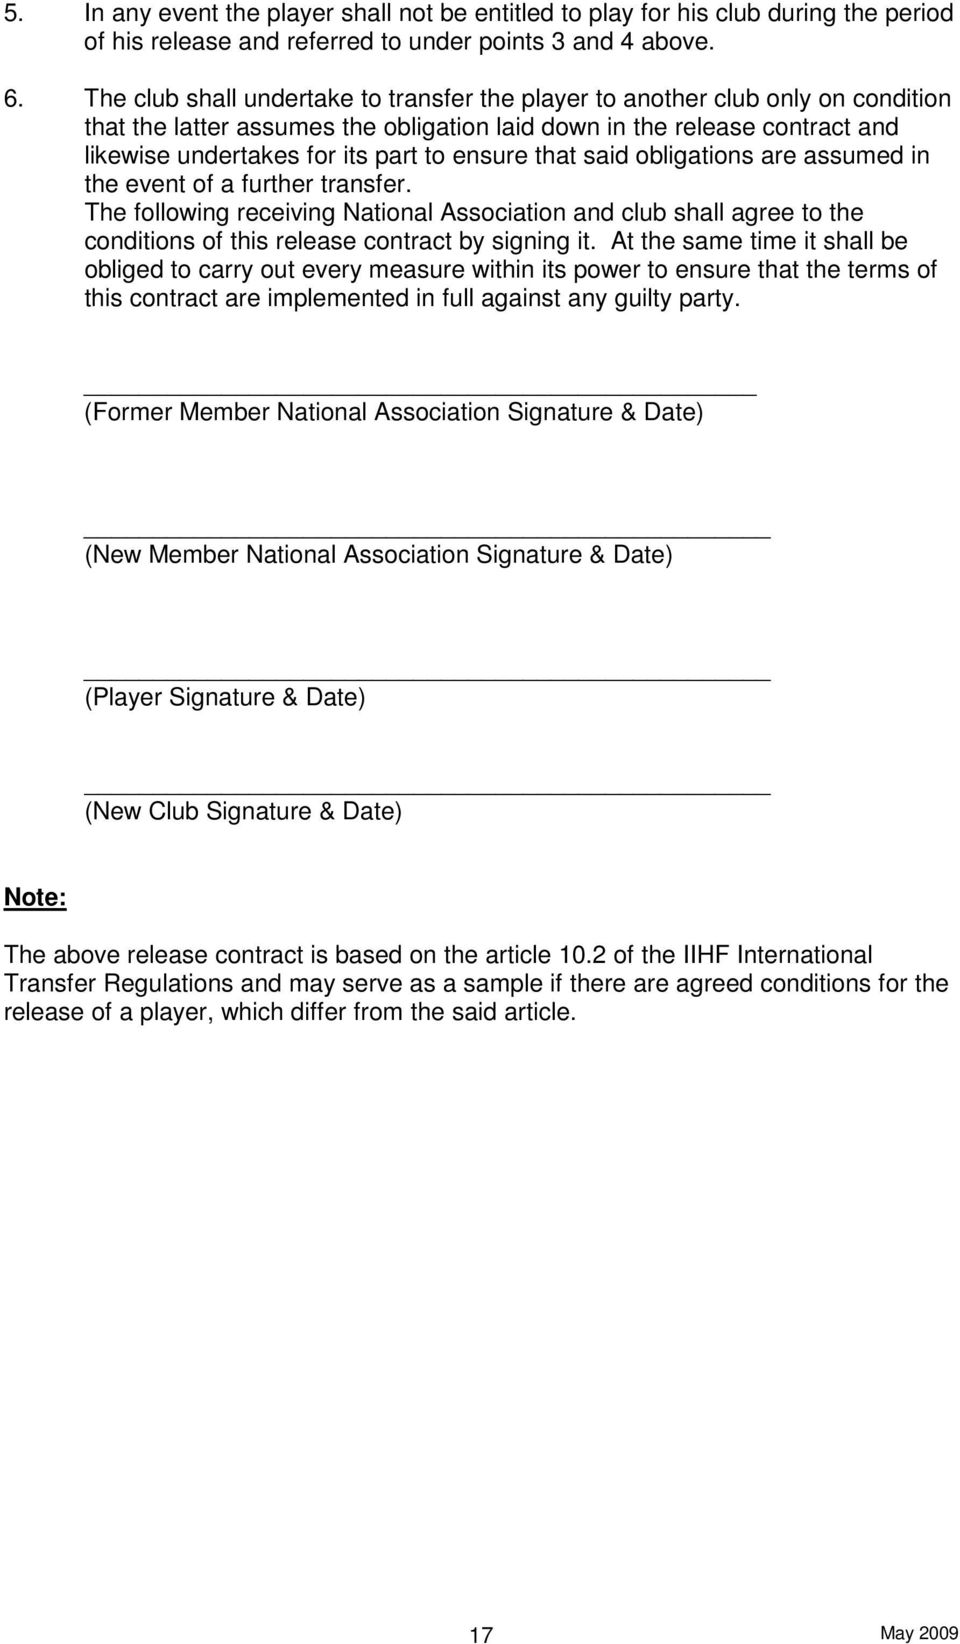 ensure that said obligations are assumed in the event of a further transfer. The following receiving National Association and club shall agree to the conditions of this release contract by signing it.